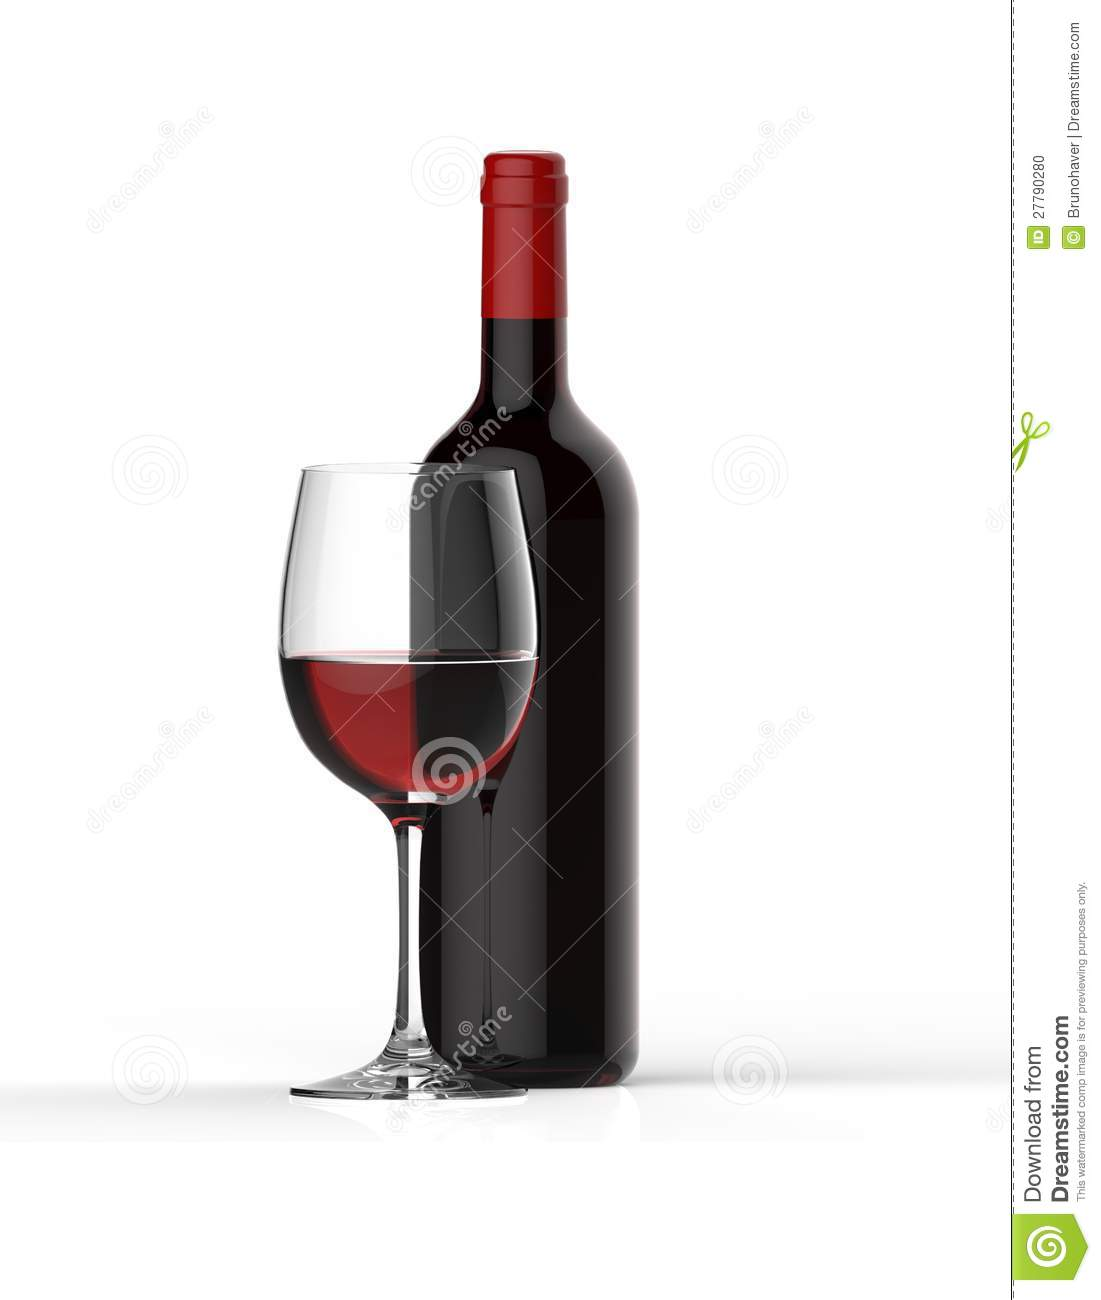 Bottle of red wine with glass stock photo image 27790280 for Wine bottle glass